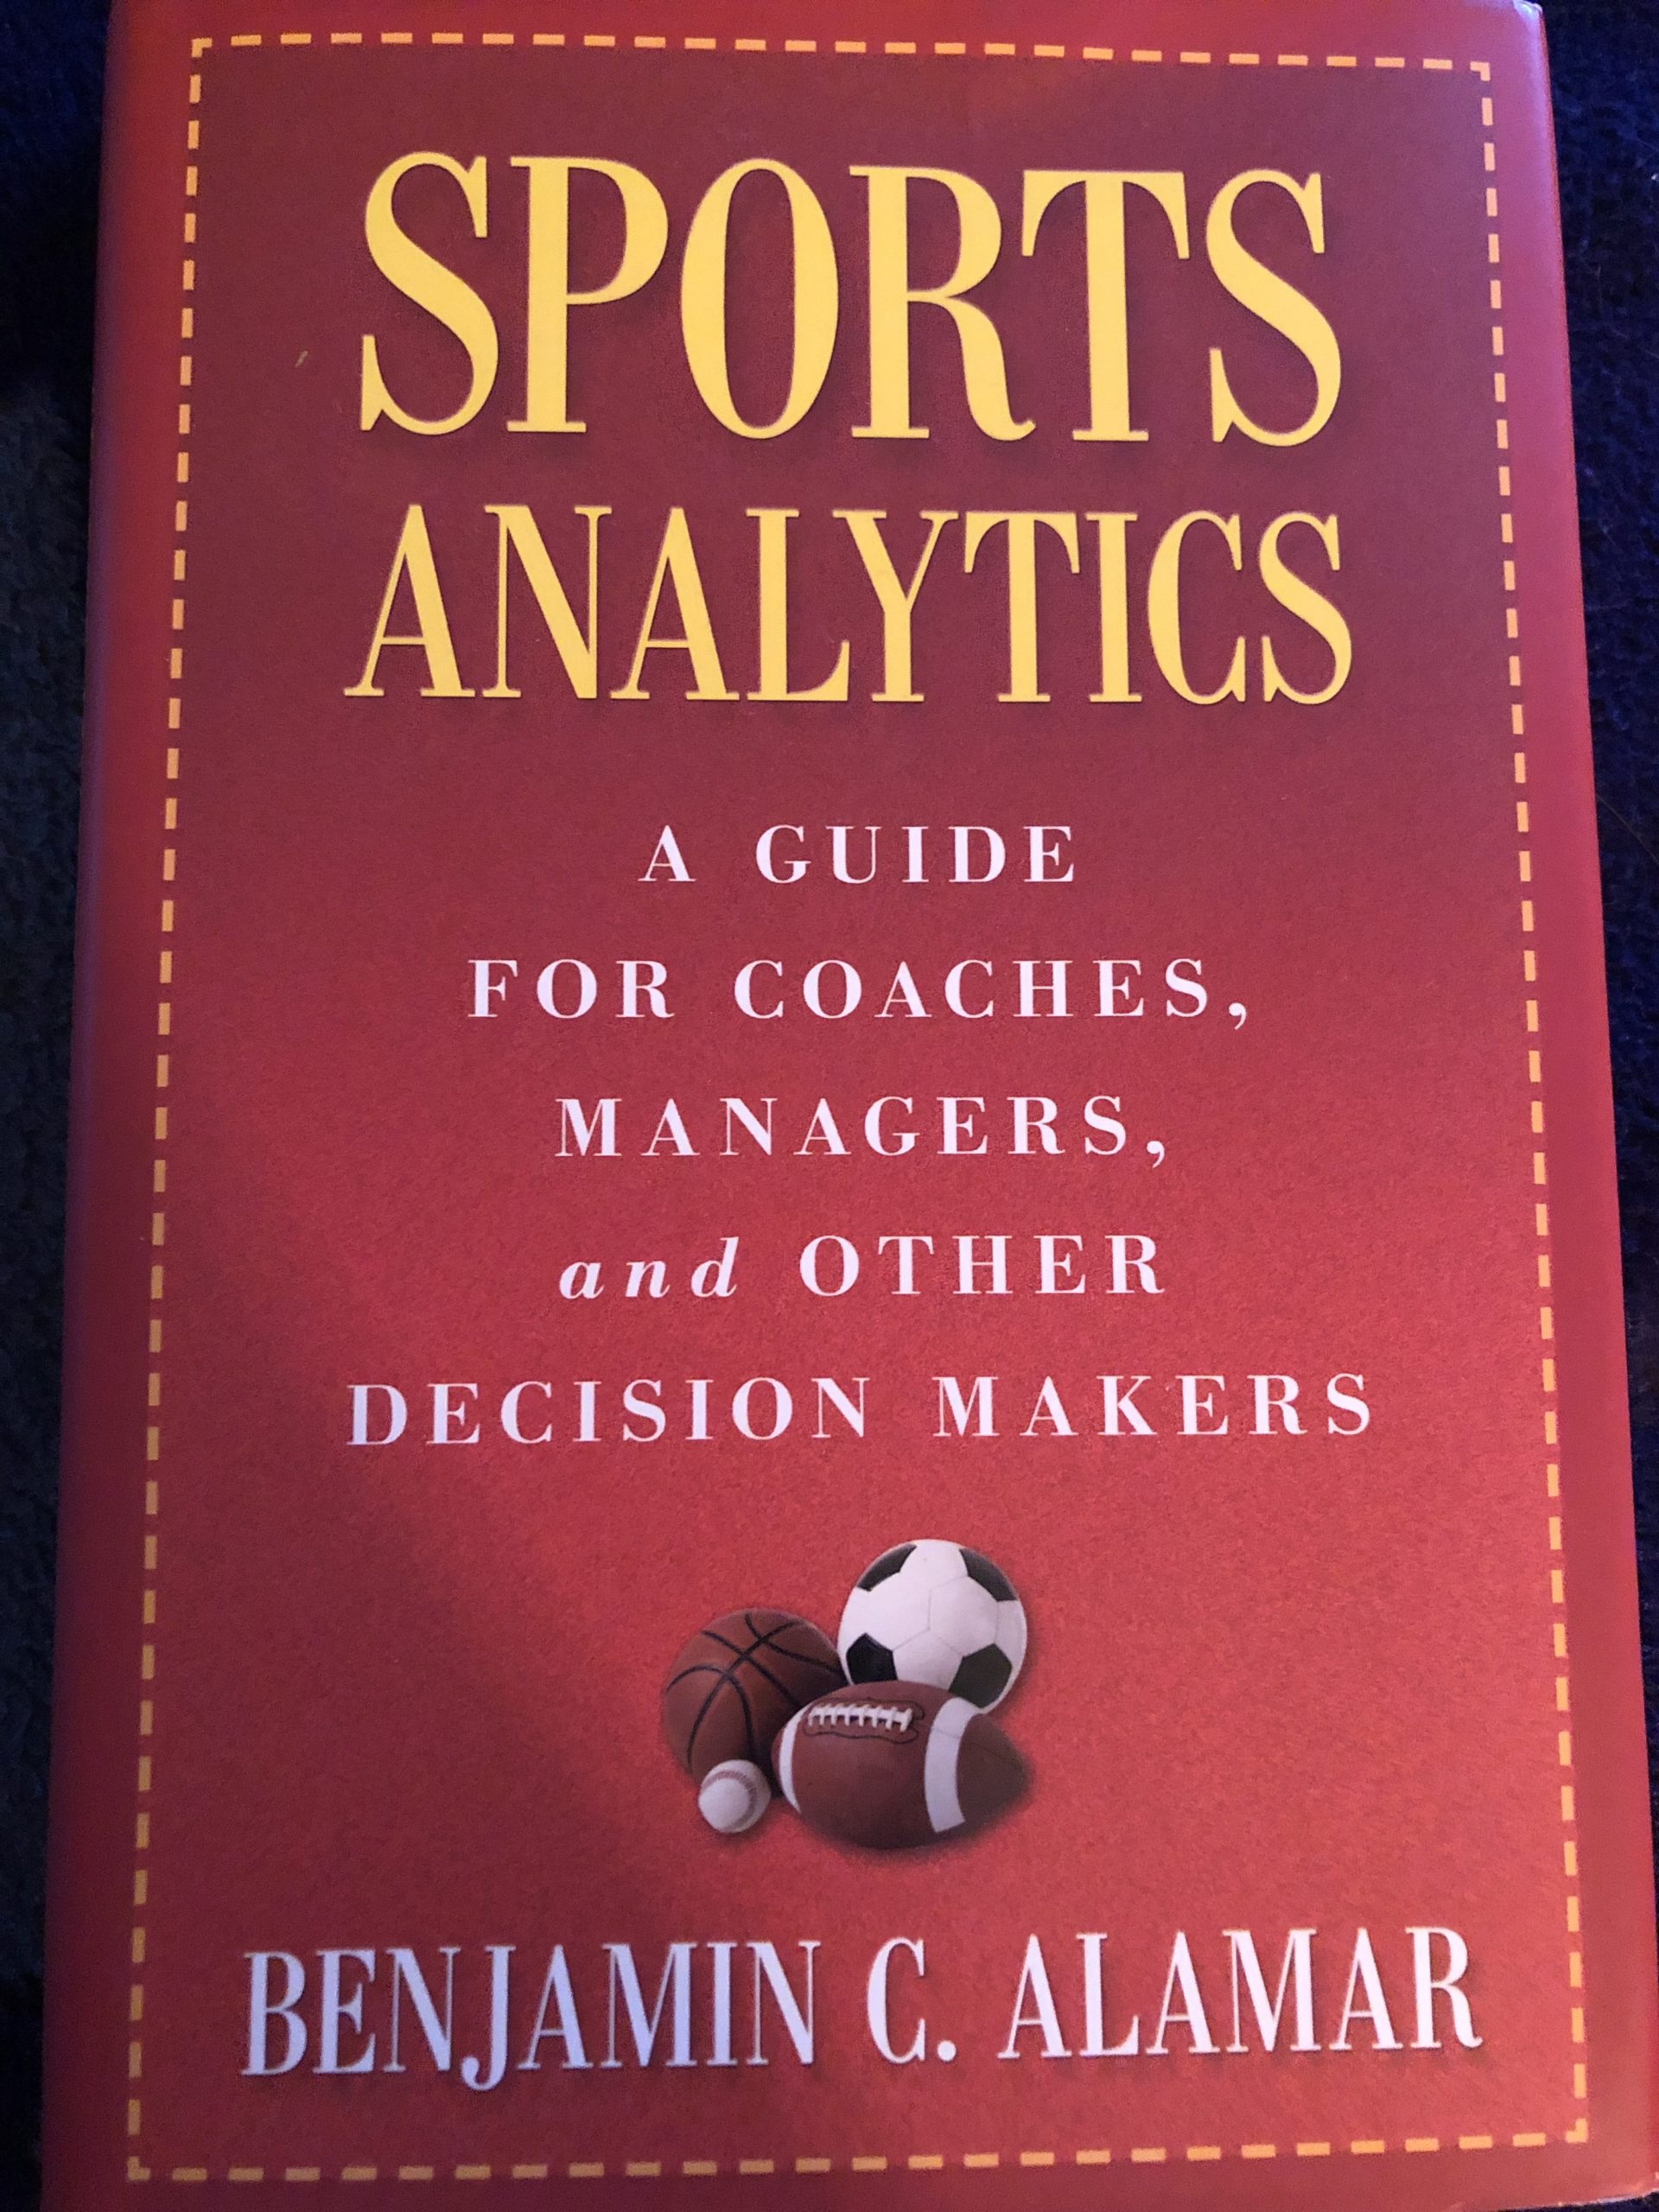 Book Review – Sports Analytics: A Guide for Coaches, Managers and Other Decision Makers